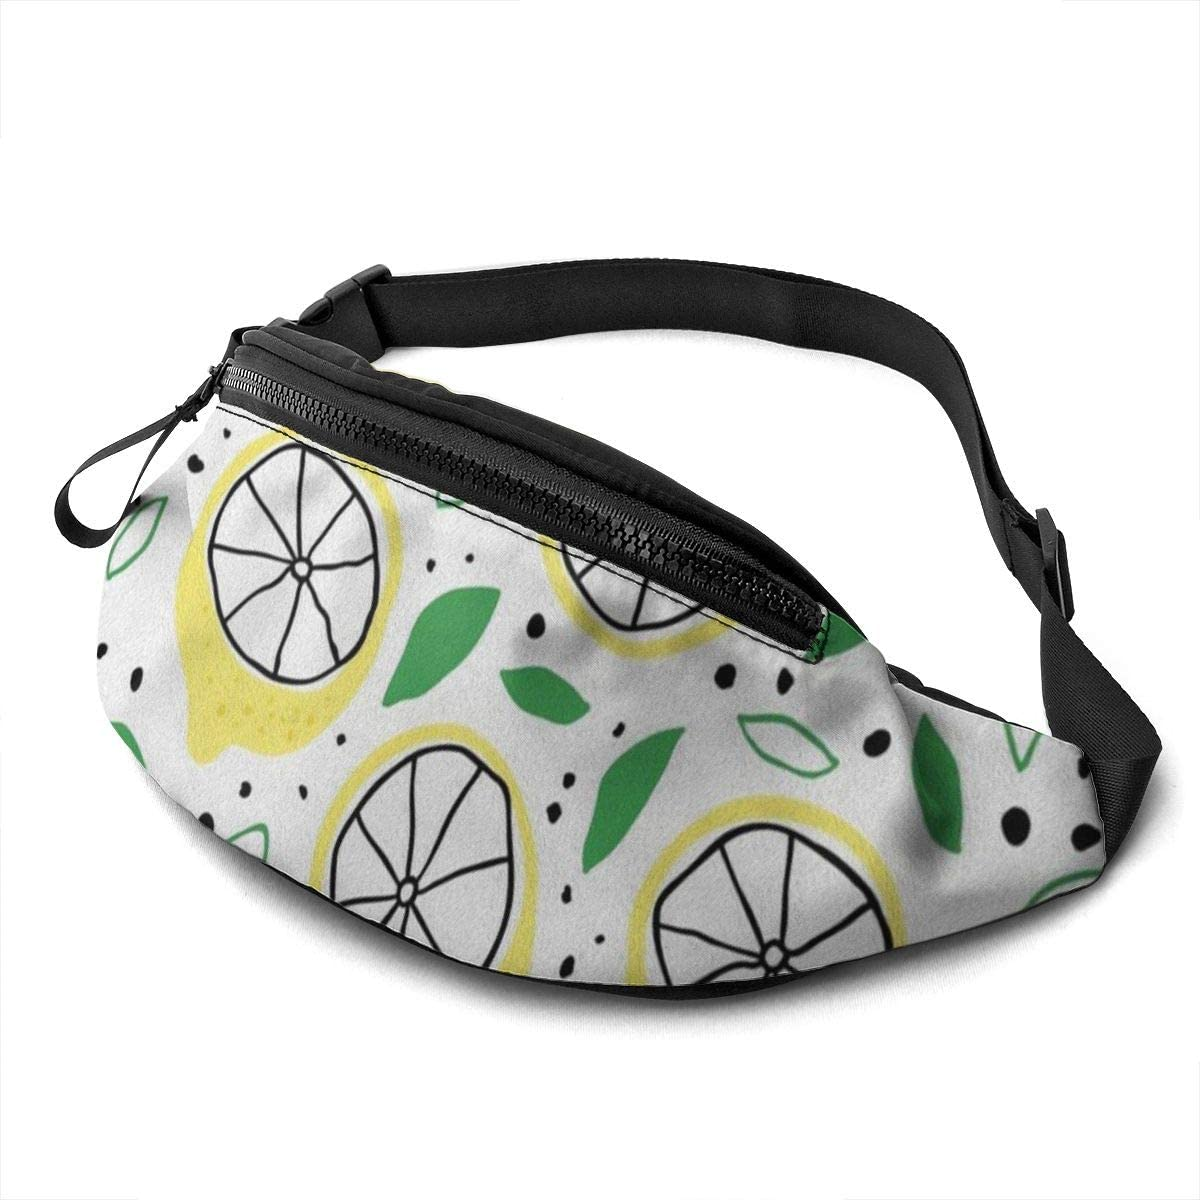 funny lemon fruit Fanny Pack for Men Women Waist Pack Bag with Headphone Jack and Zipper Pockets Adjustable Straps